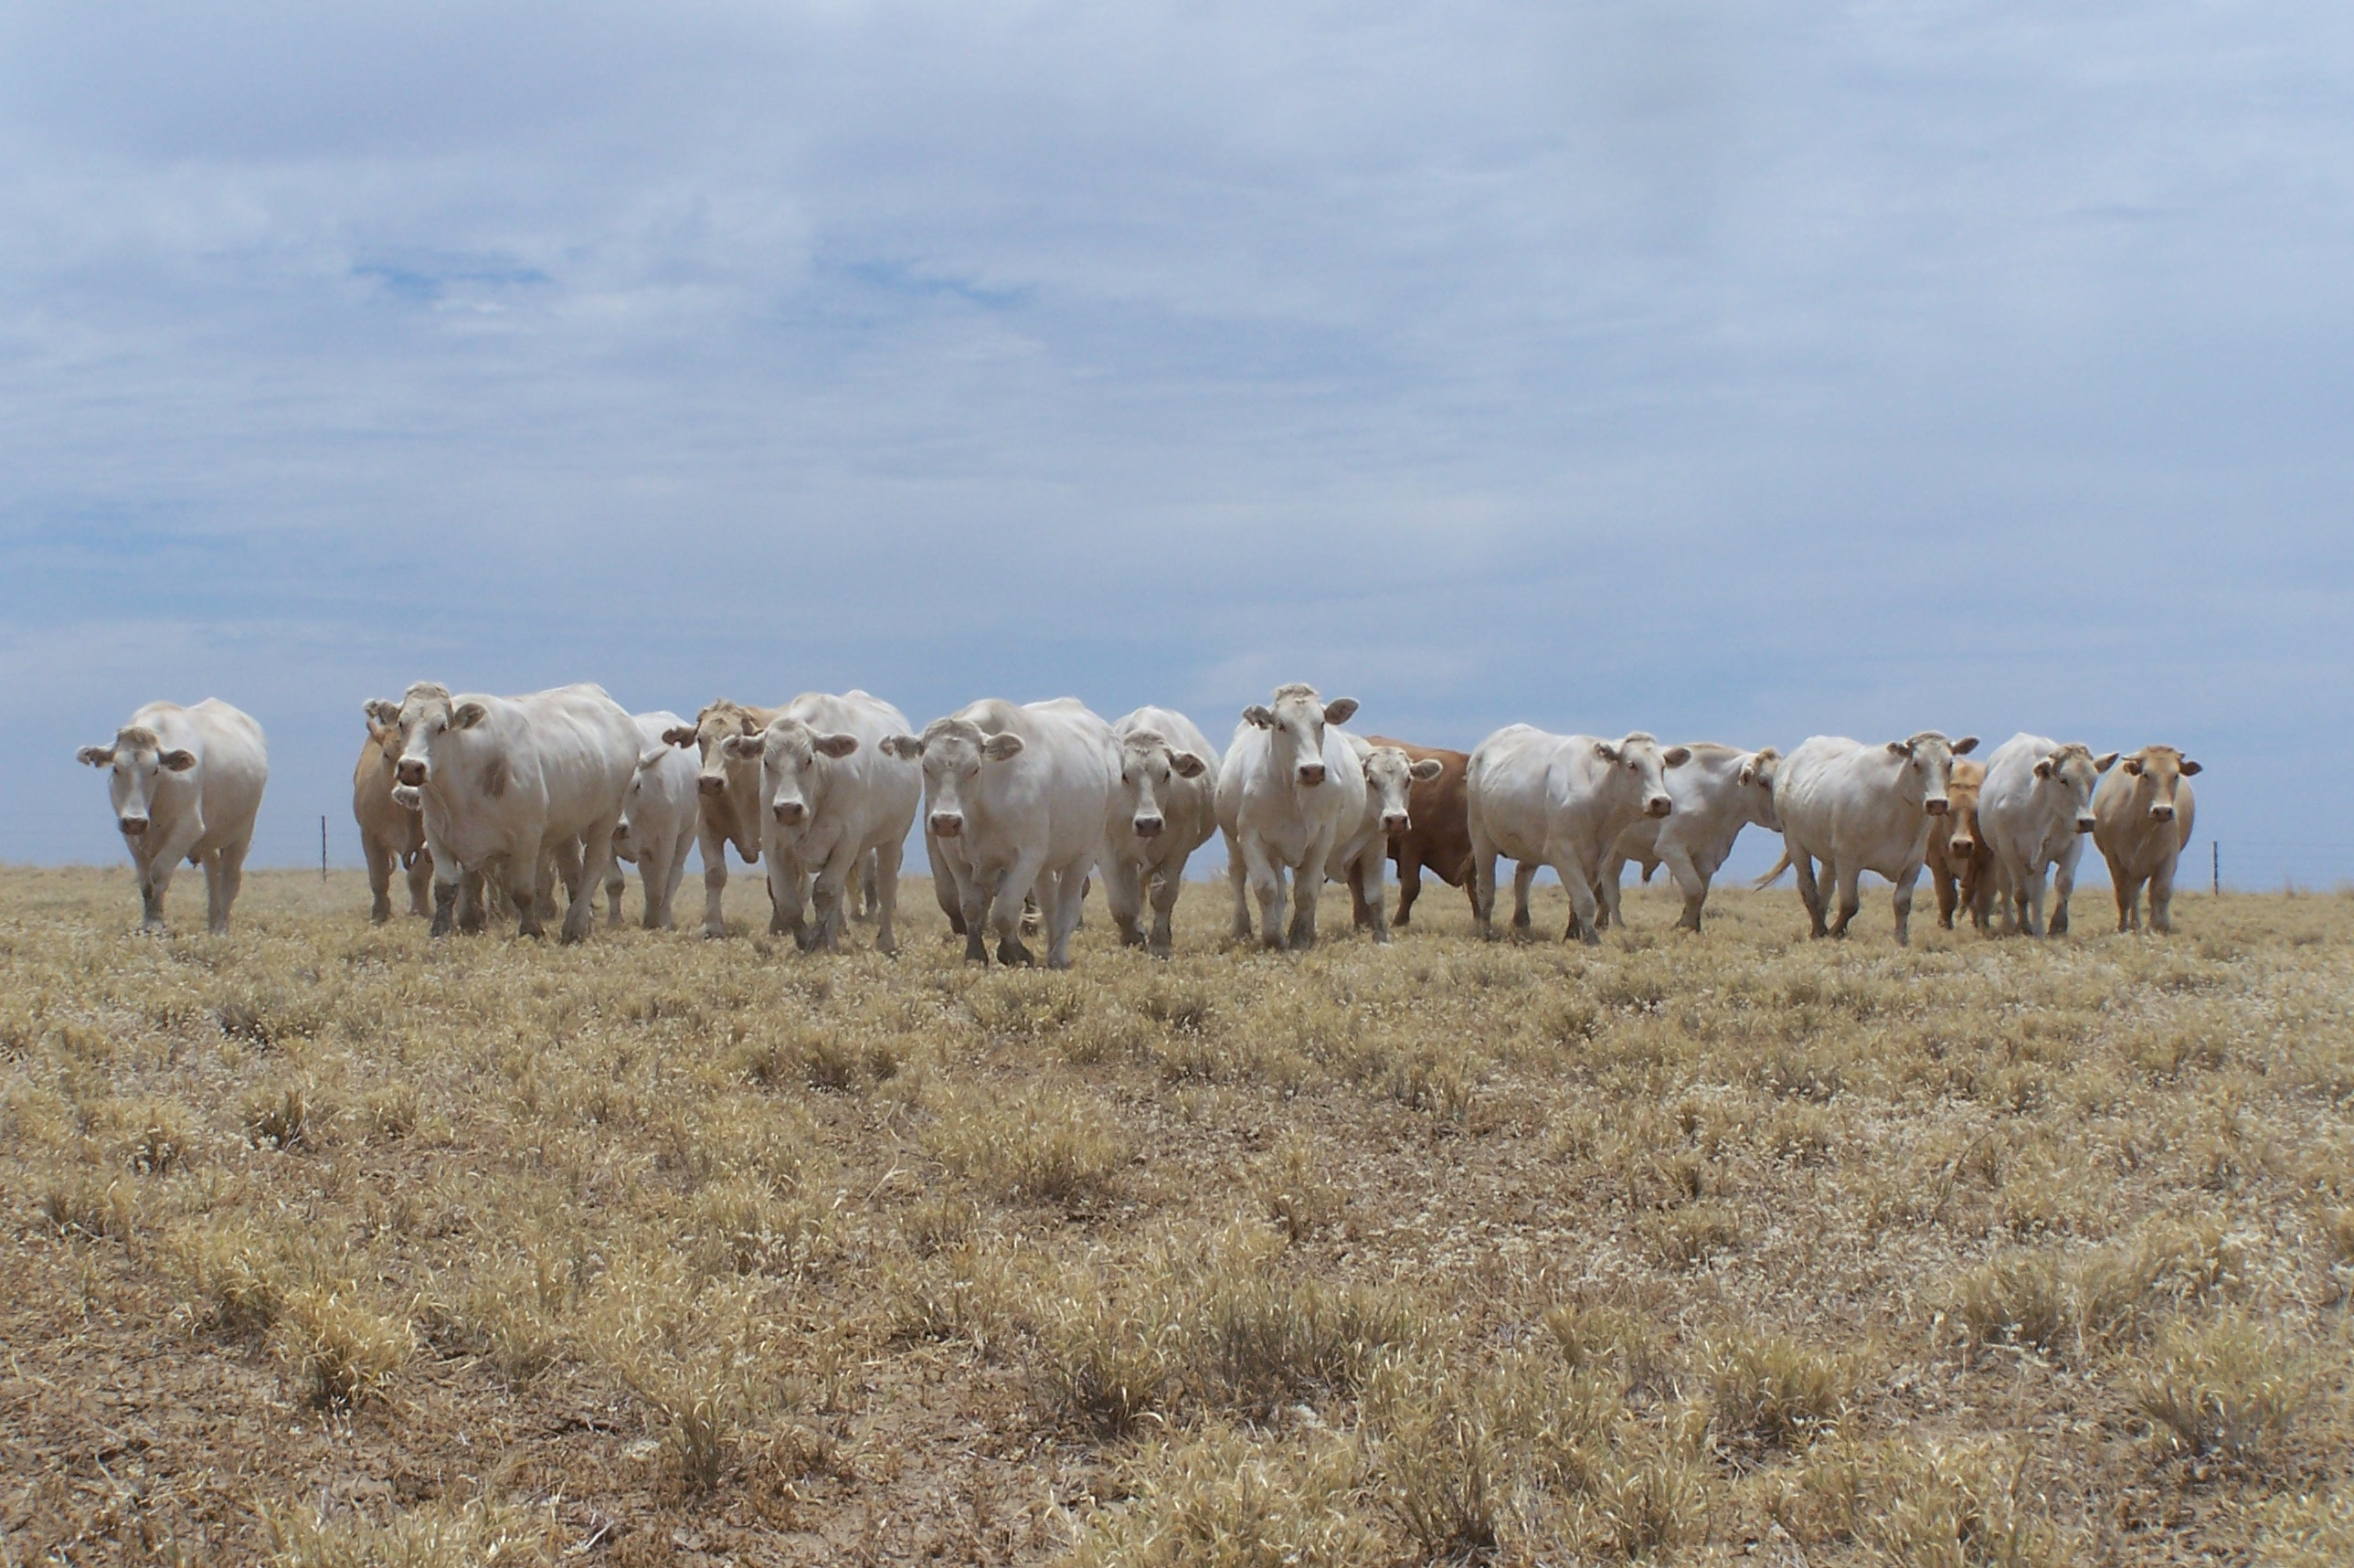 Grey Australian cattle grazing